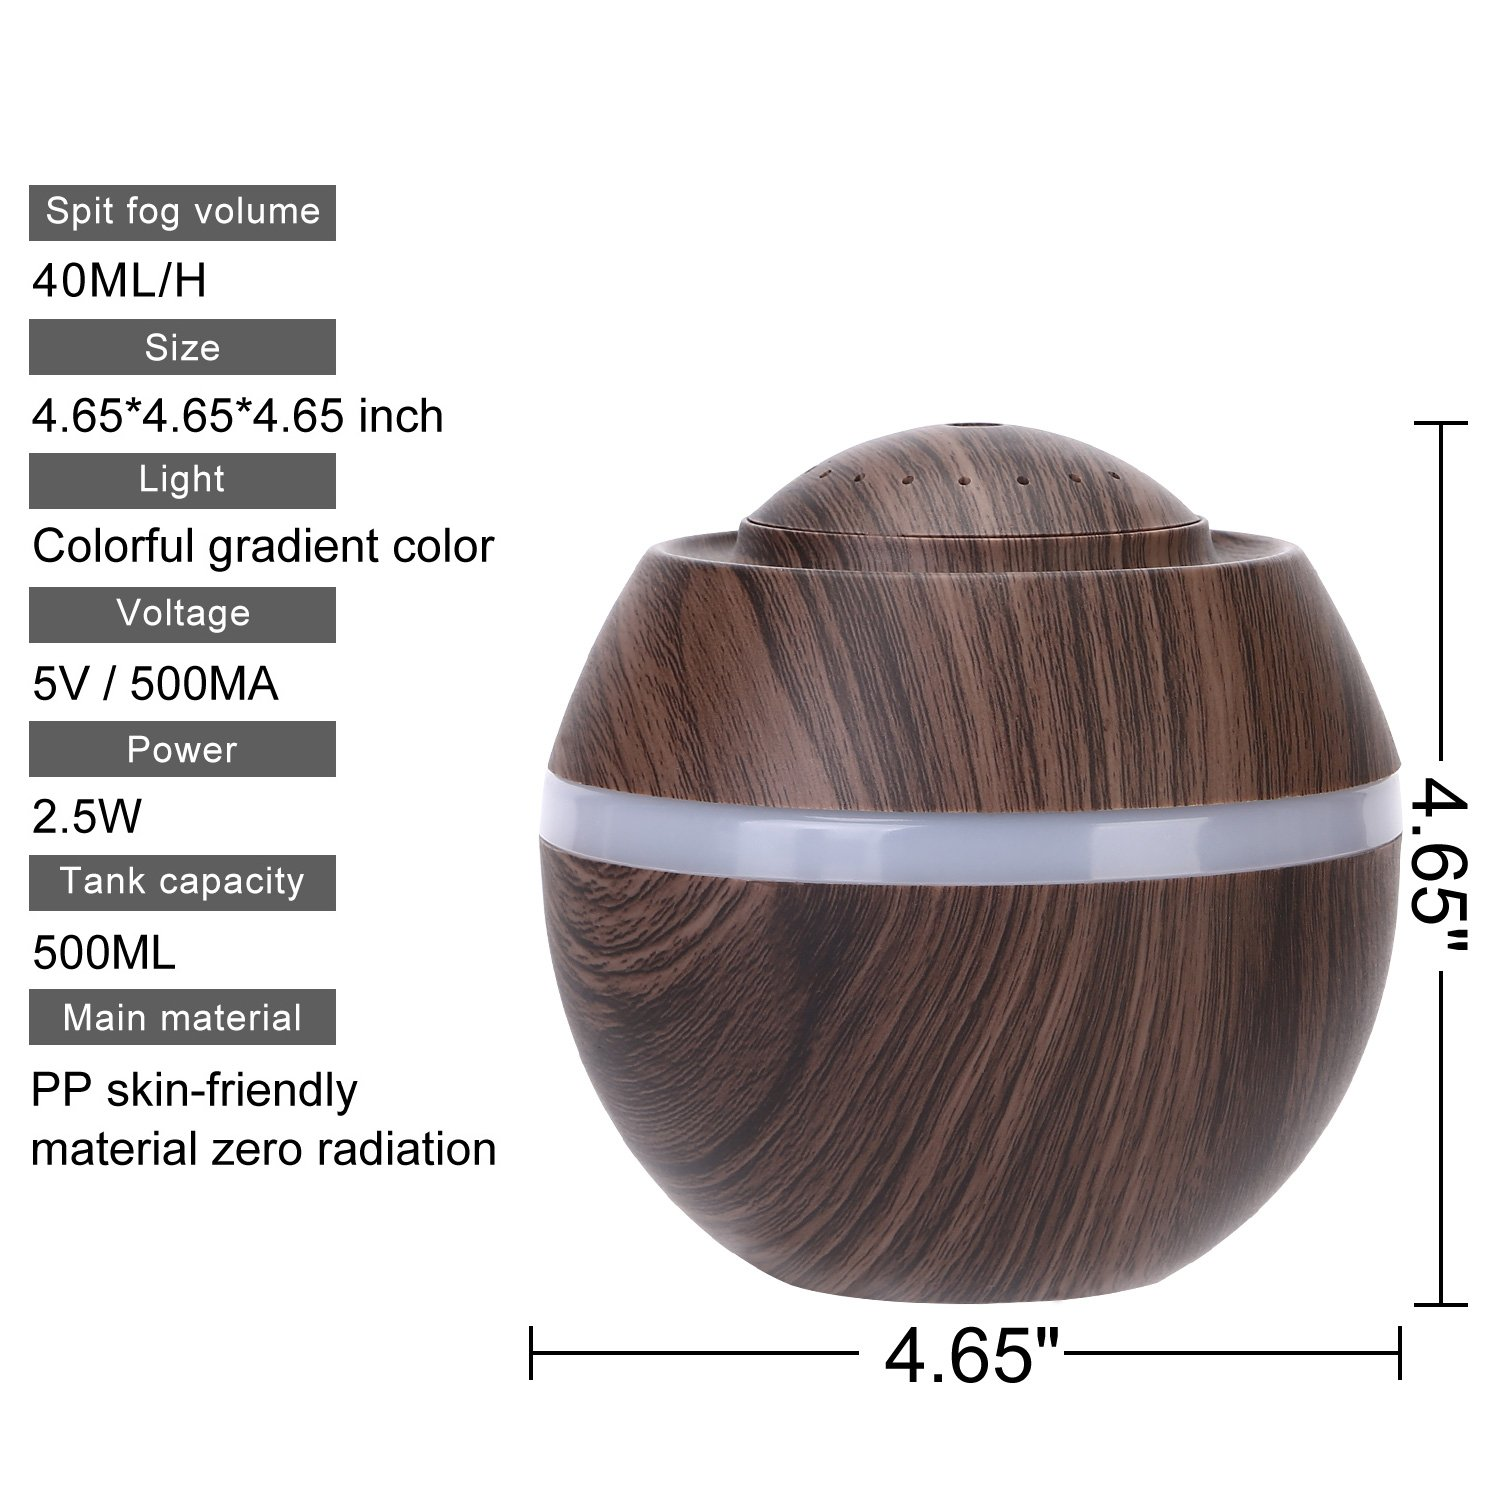 Cool Mist Humidifier Ultrasonic Aroma Essential Oil Diffuser for Office Home Bedroom Living Room Study Yoga Spa - Wood Grain (Brown) by O'abazar (Image #5)